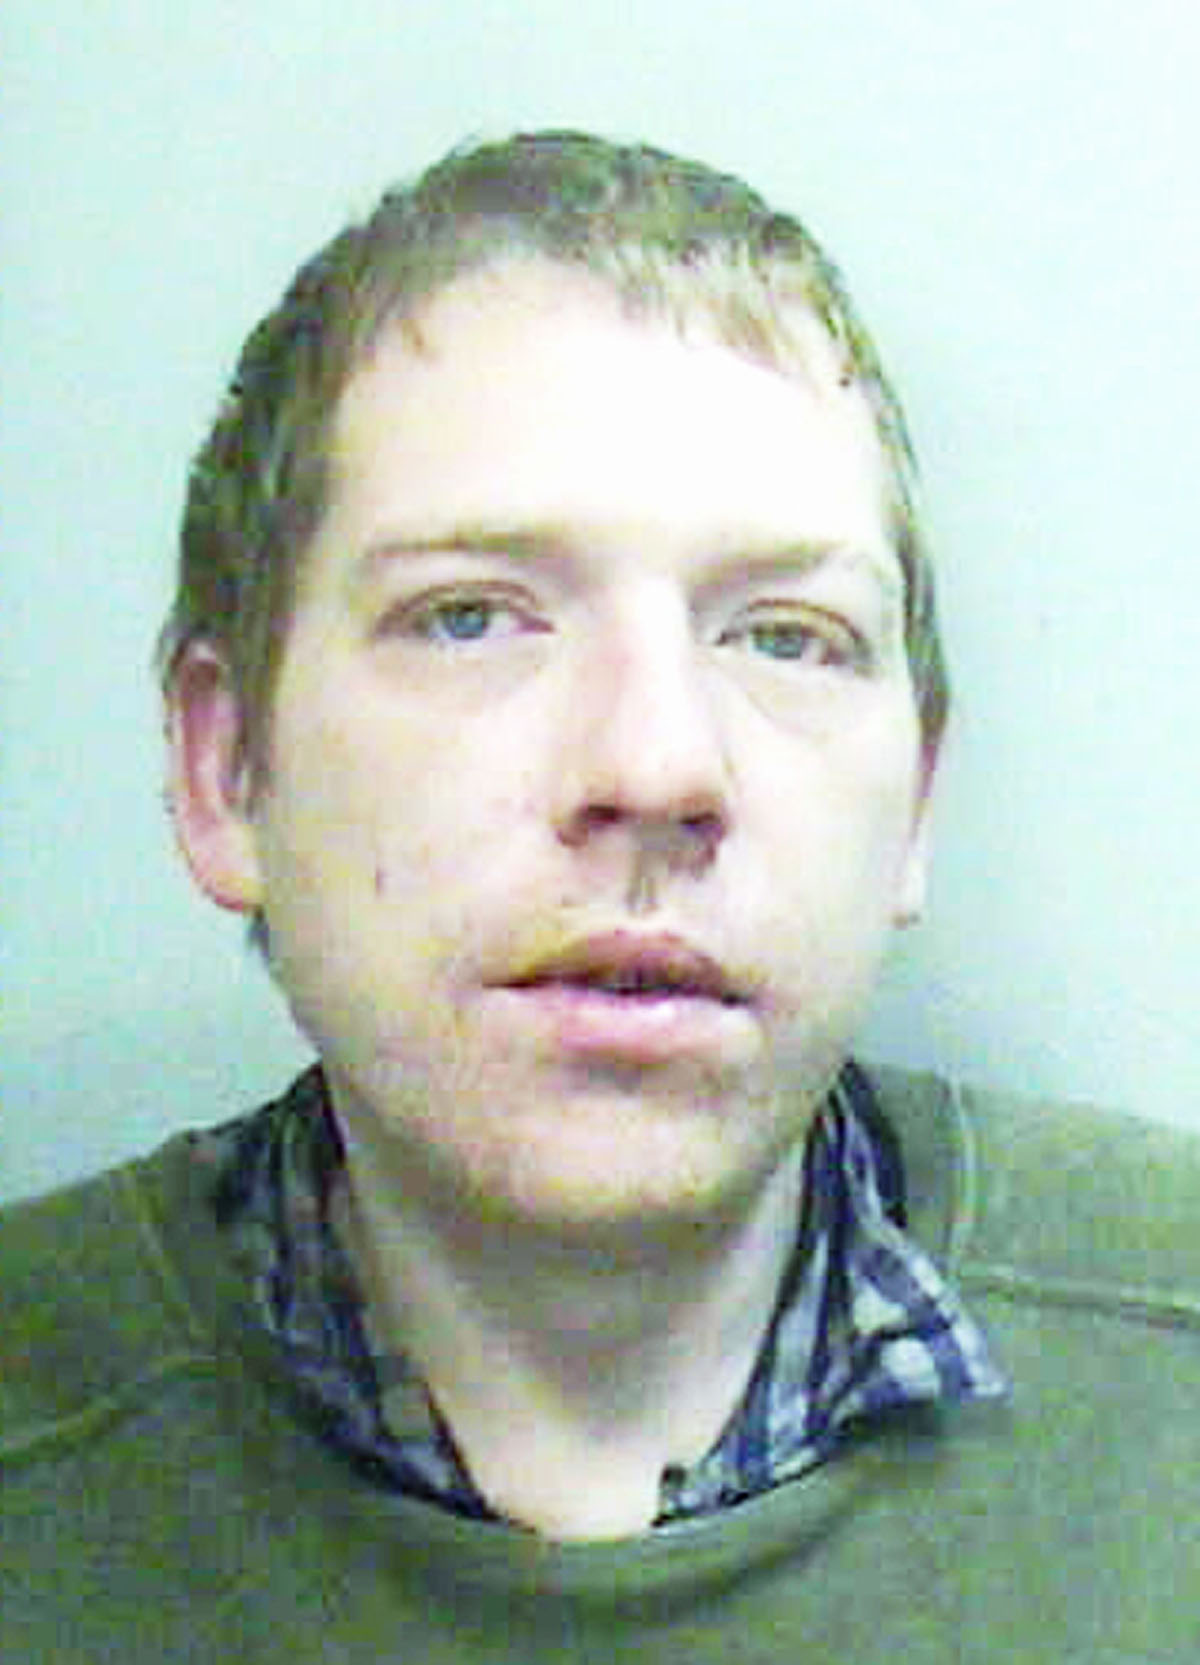 East Lancs thugs jailed for brutal attack on doorman